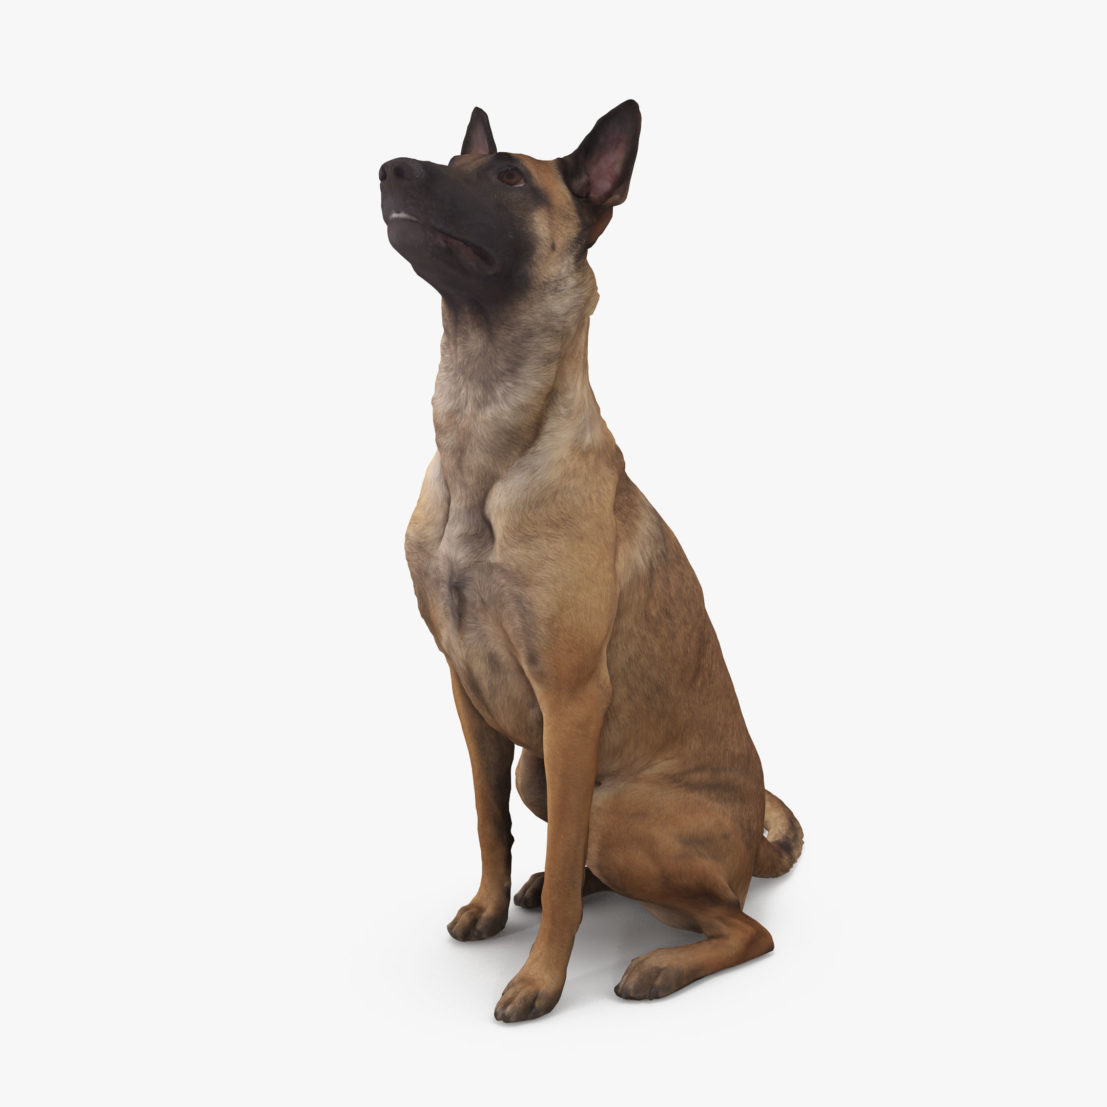 Malinois Dog Sitting 3D Model | 3DTree Scanning Studio